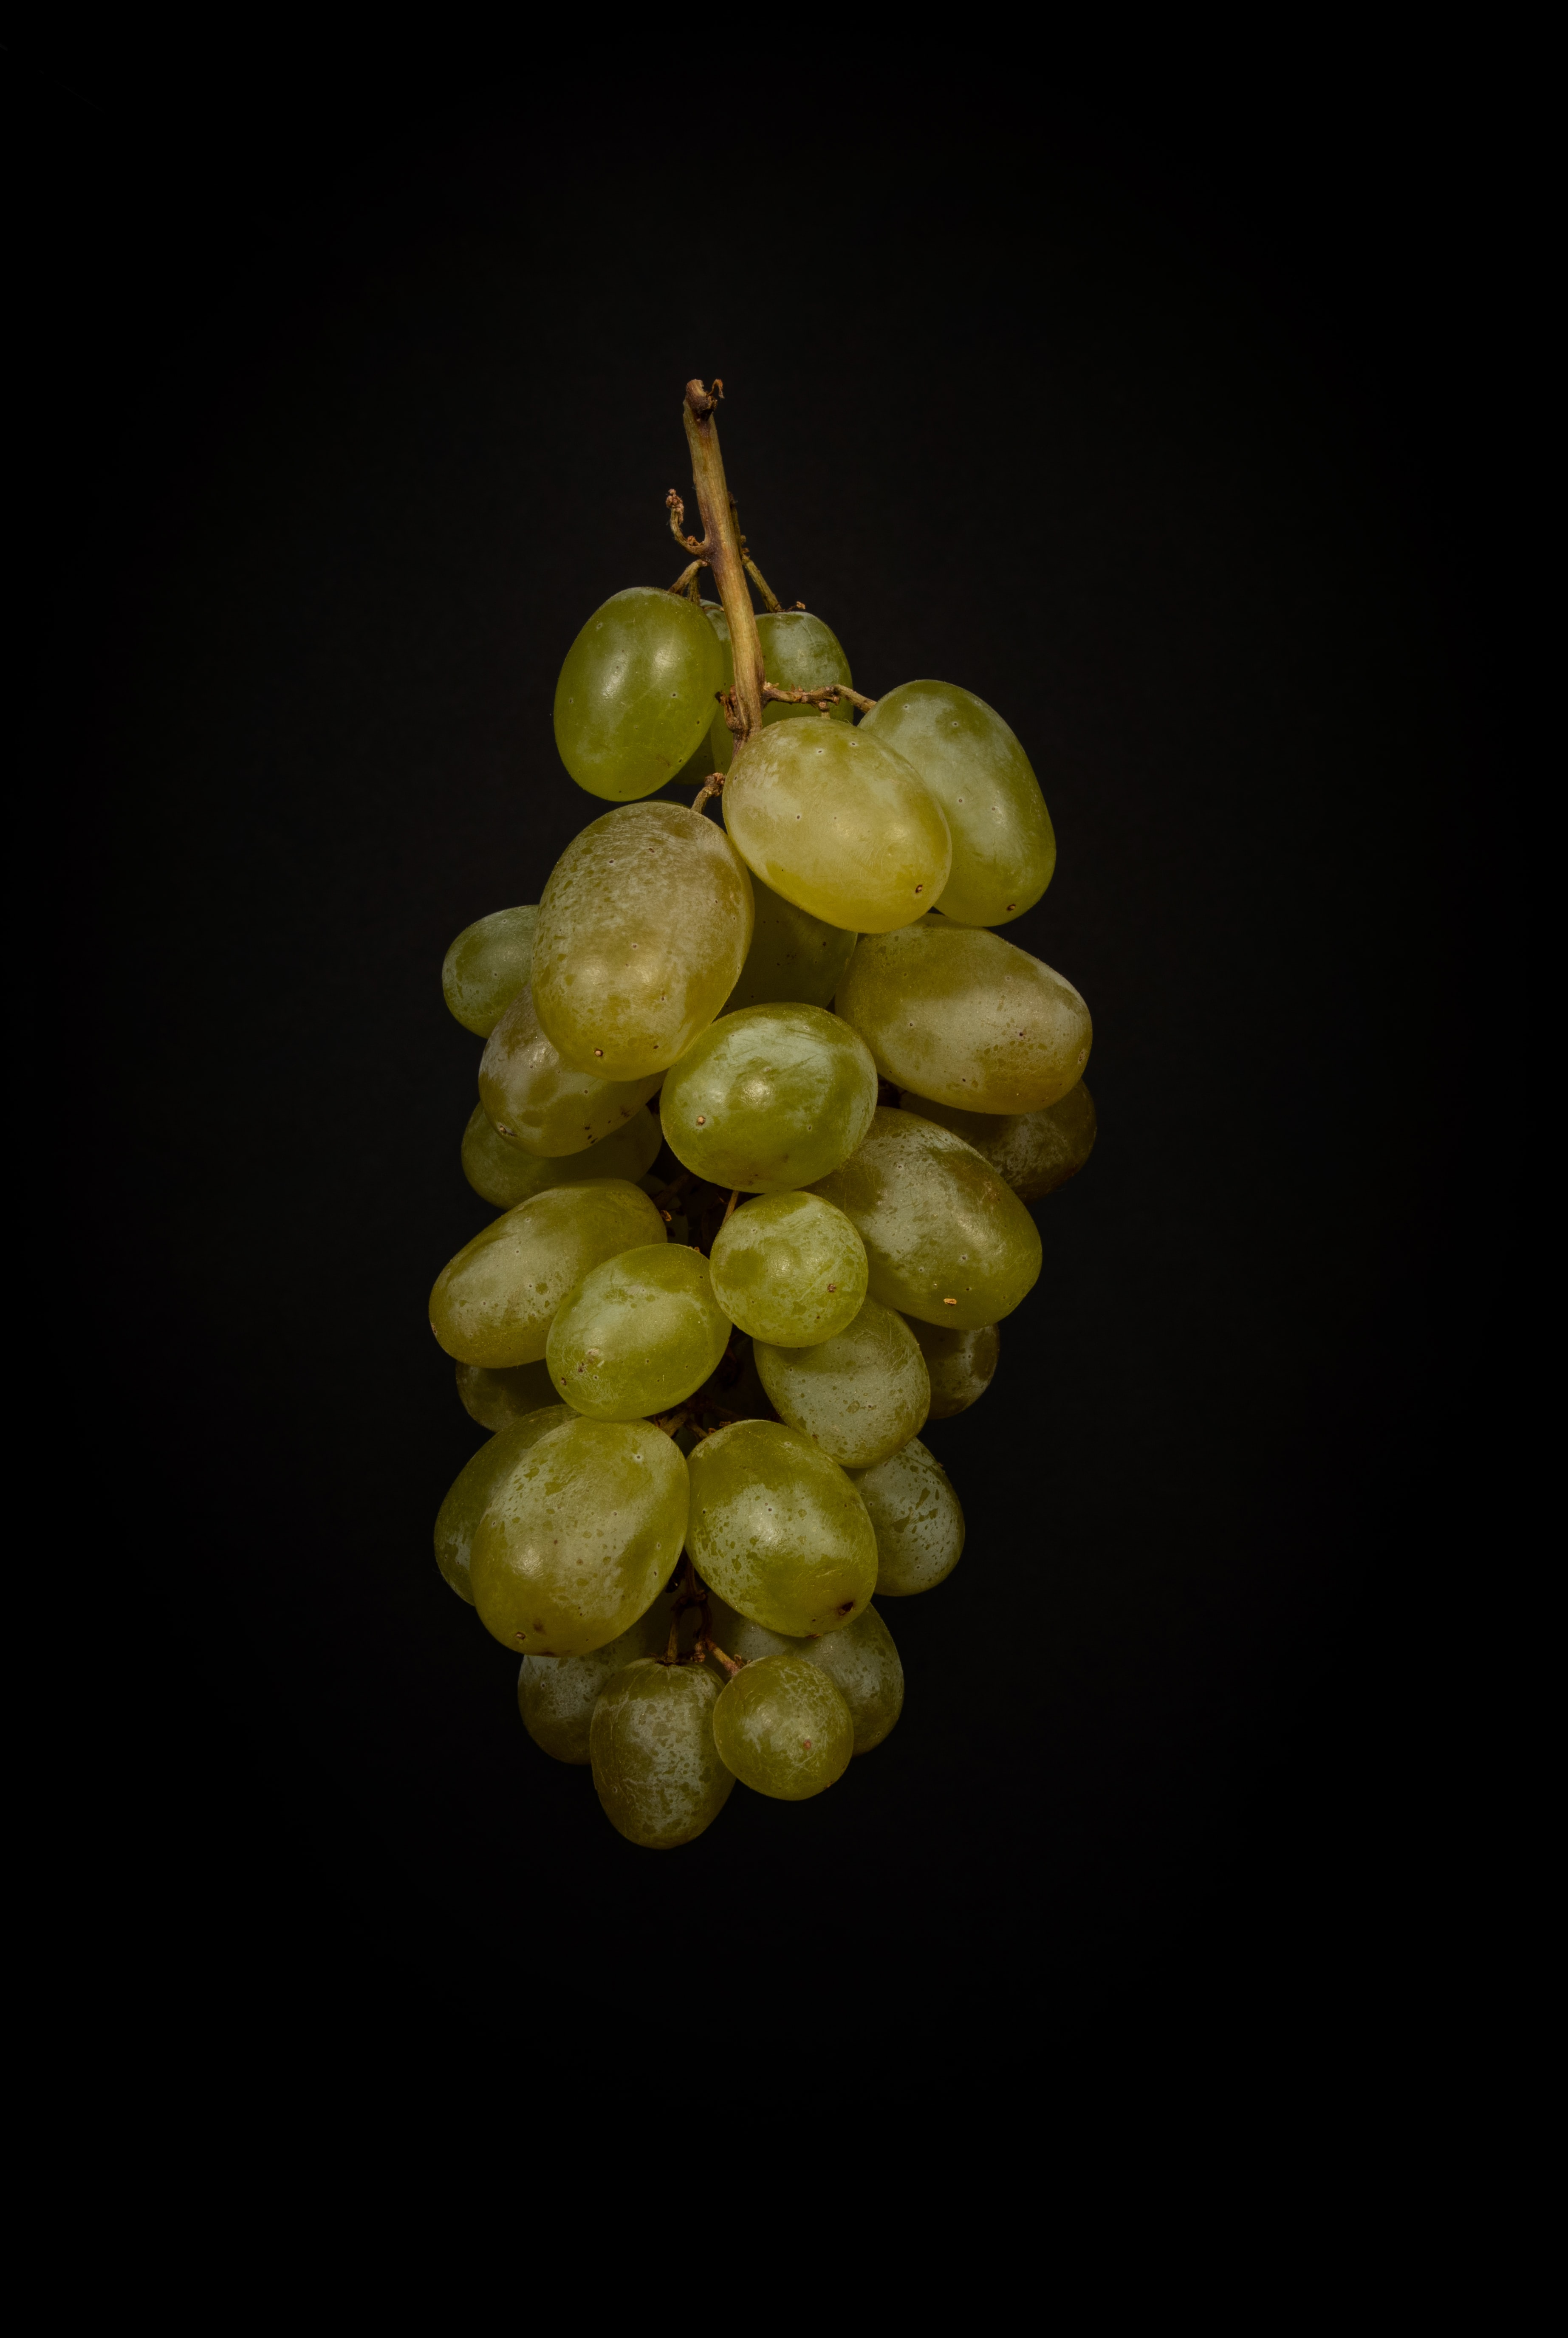 green grape fruits